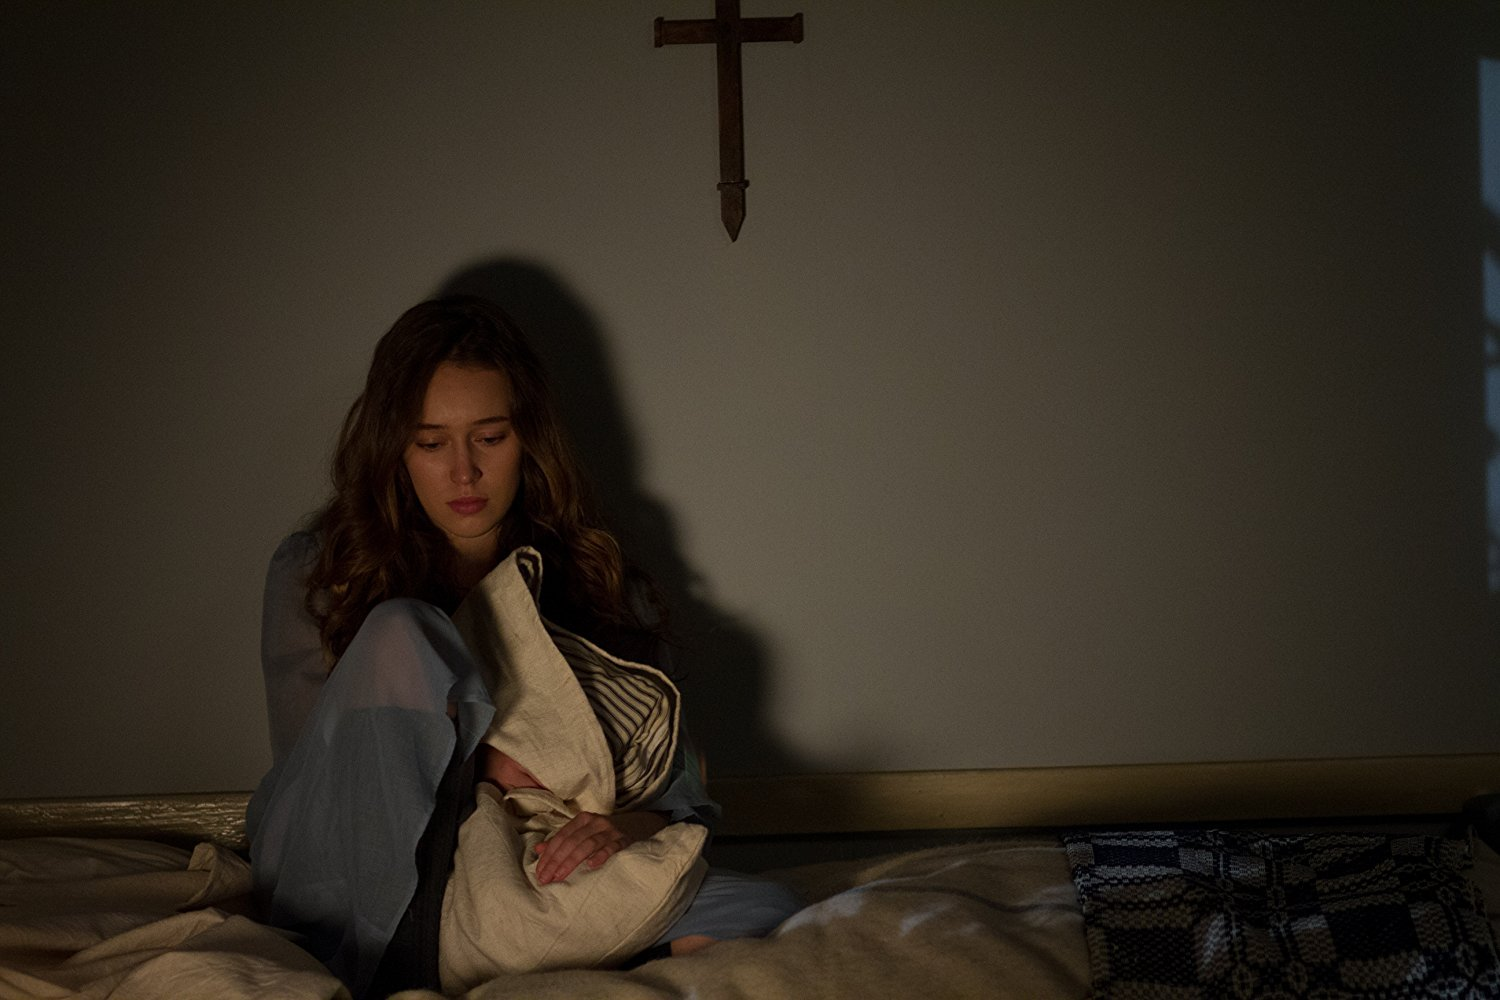 Alycia Debnam-Carey as Mary. After Ruth is shunned